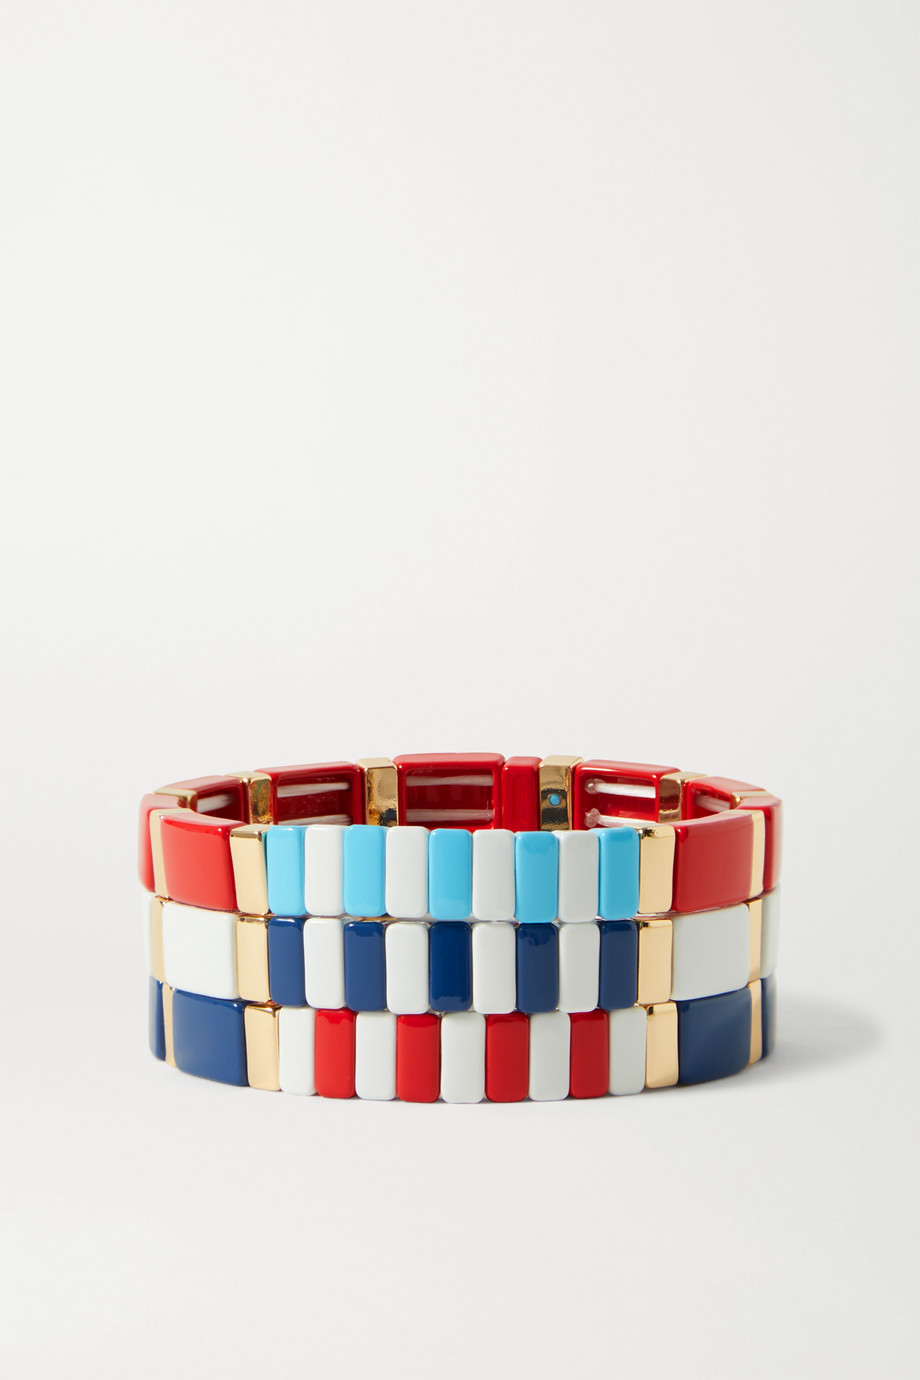 ROXANNE ASSOULIN Rock the Vote set of three enamel and gold-tone bracelets